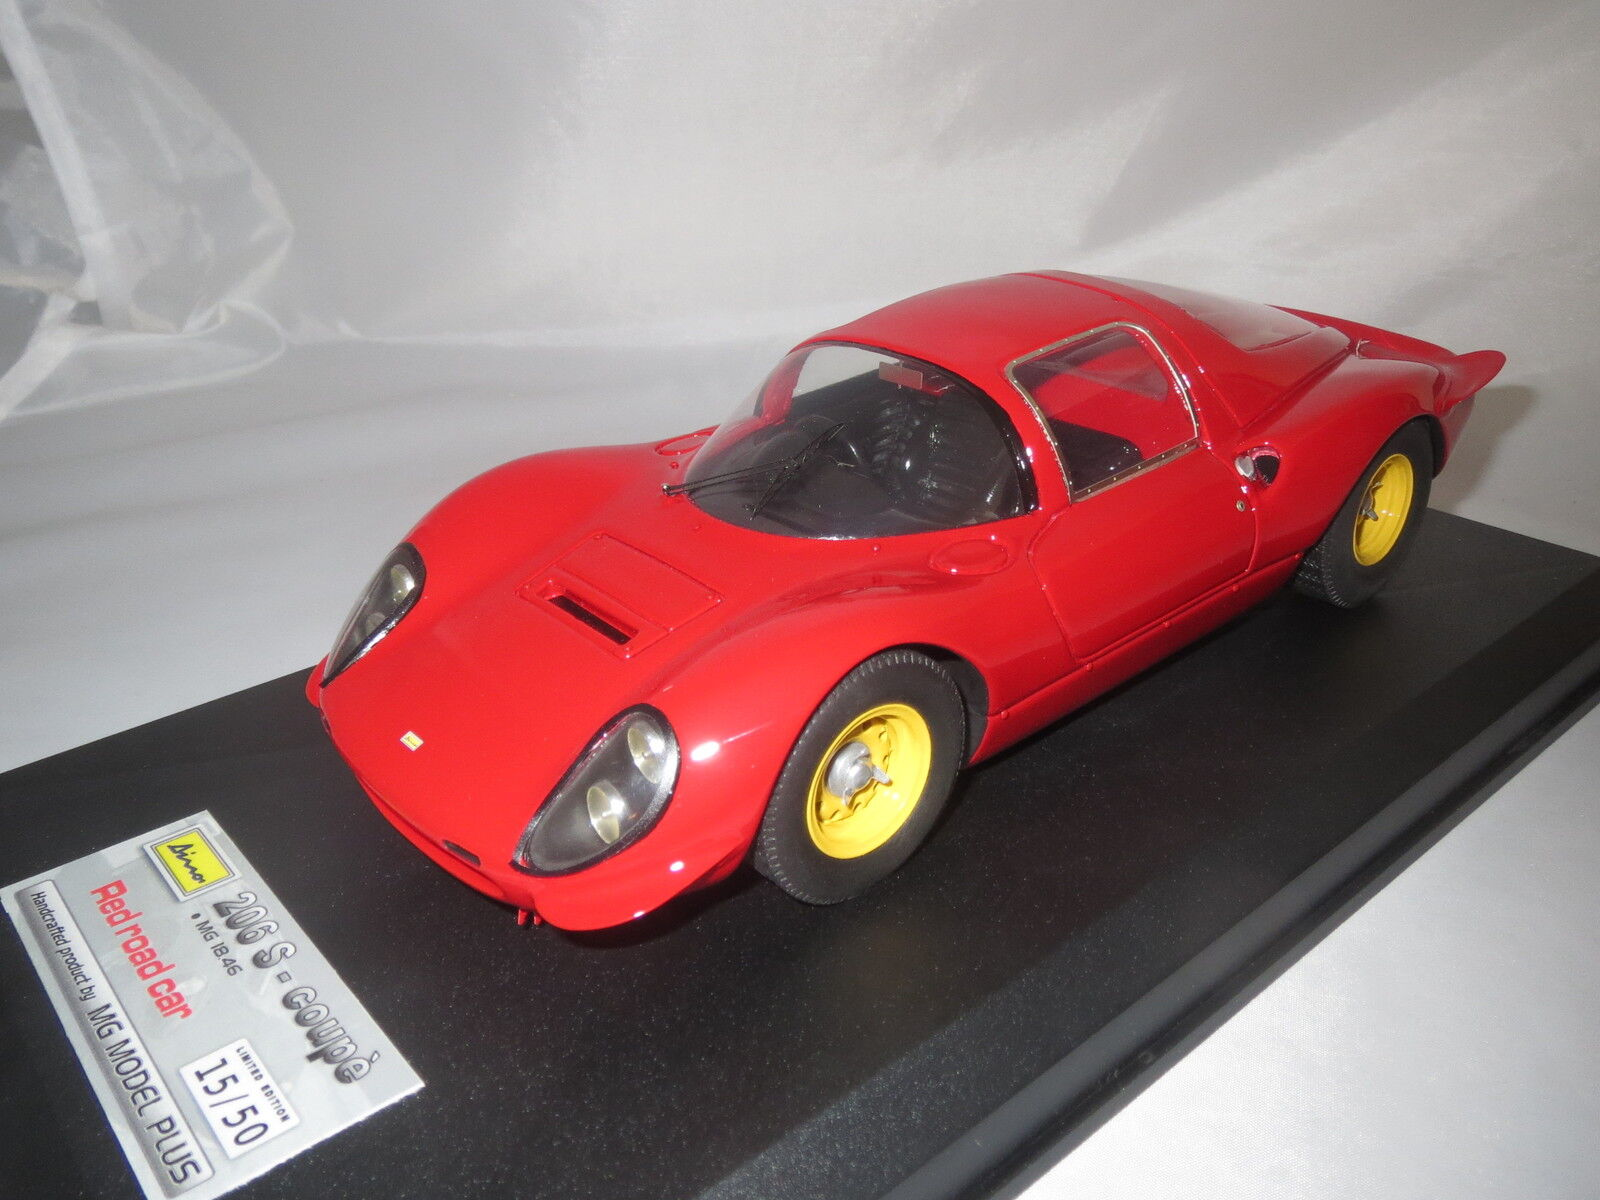 Mg MODEL plus mg1846a Ferrari Dino 206 s-Coupè rouge road car  1966  1 18